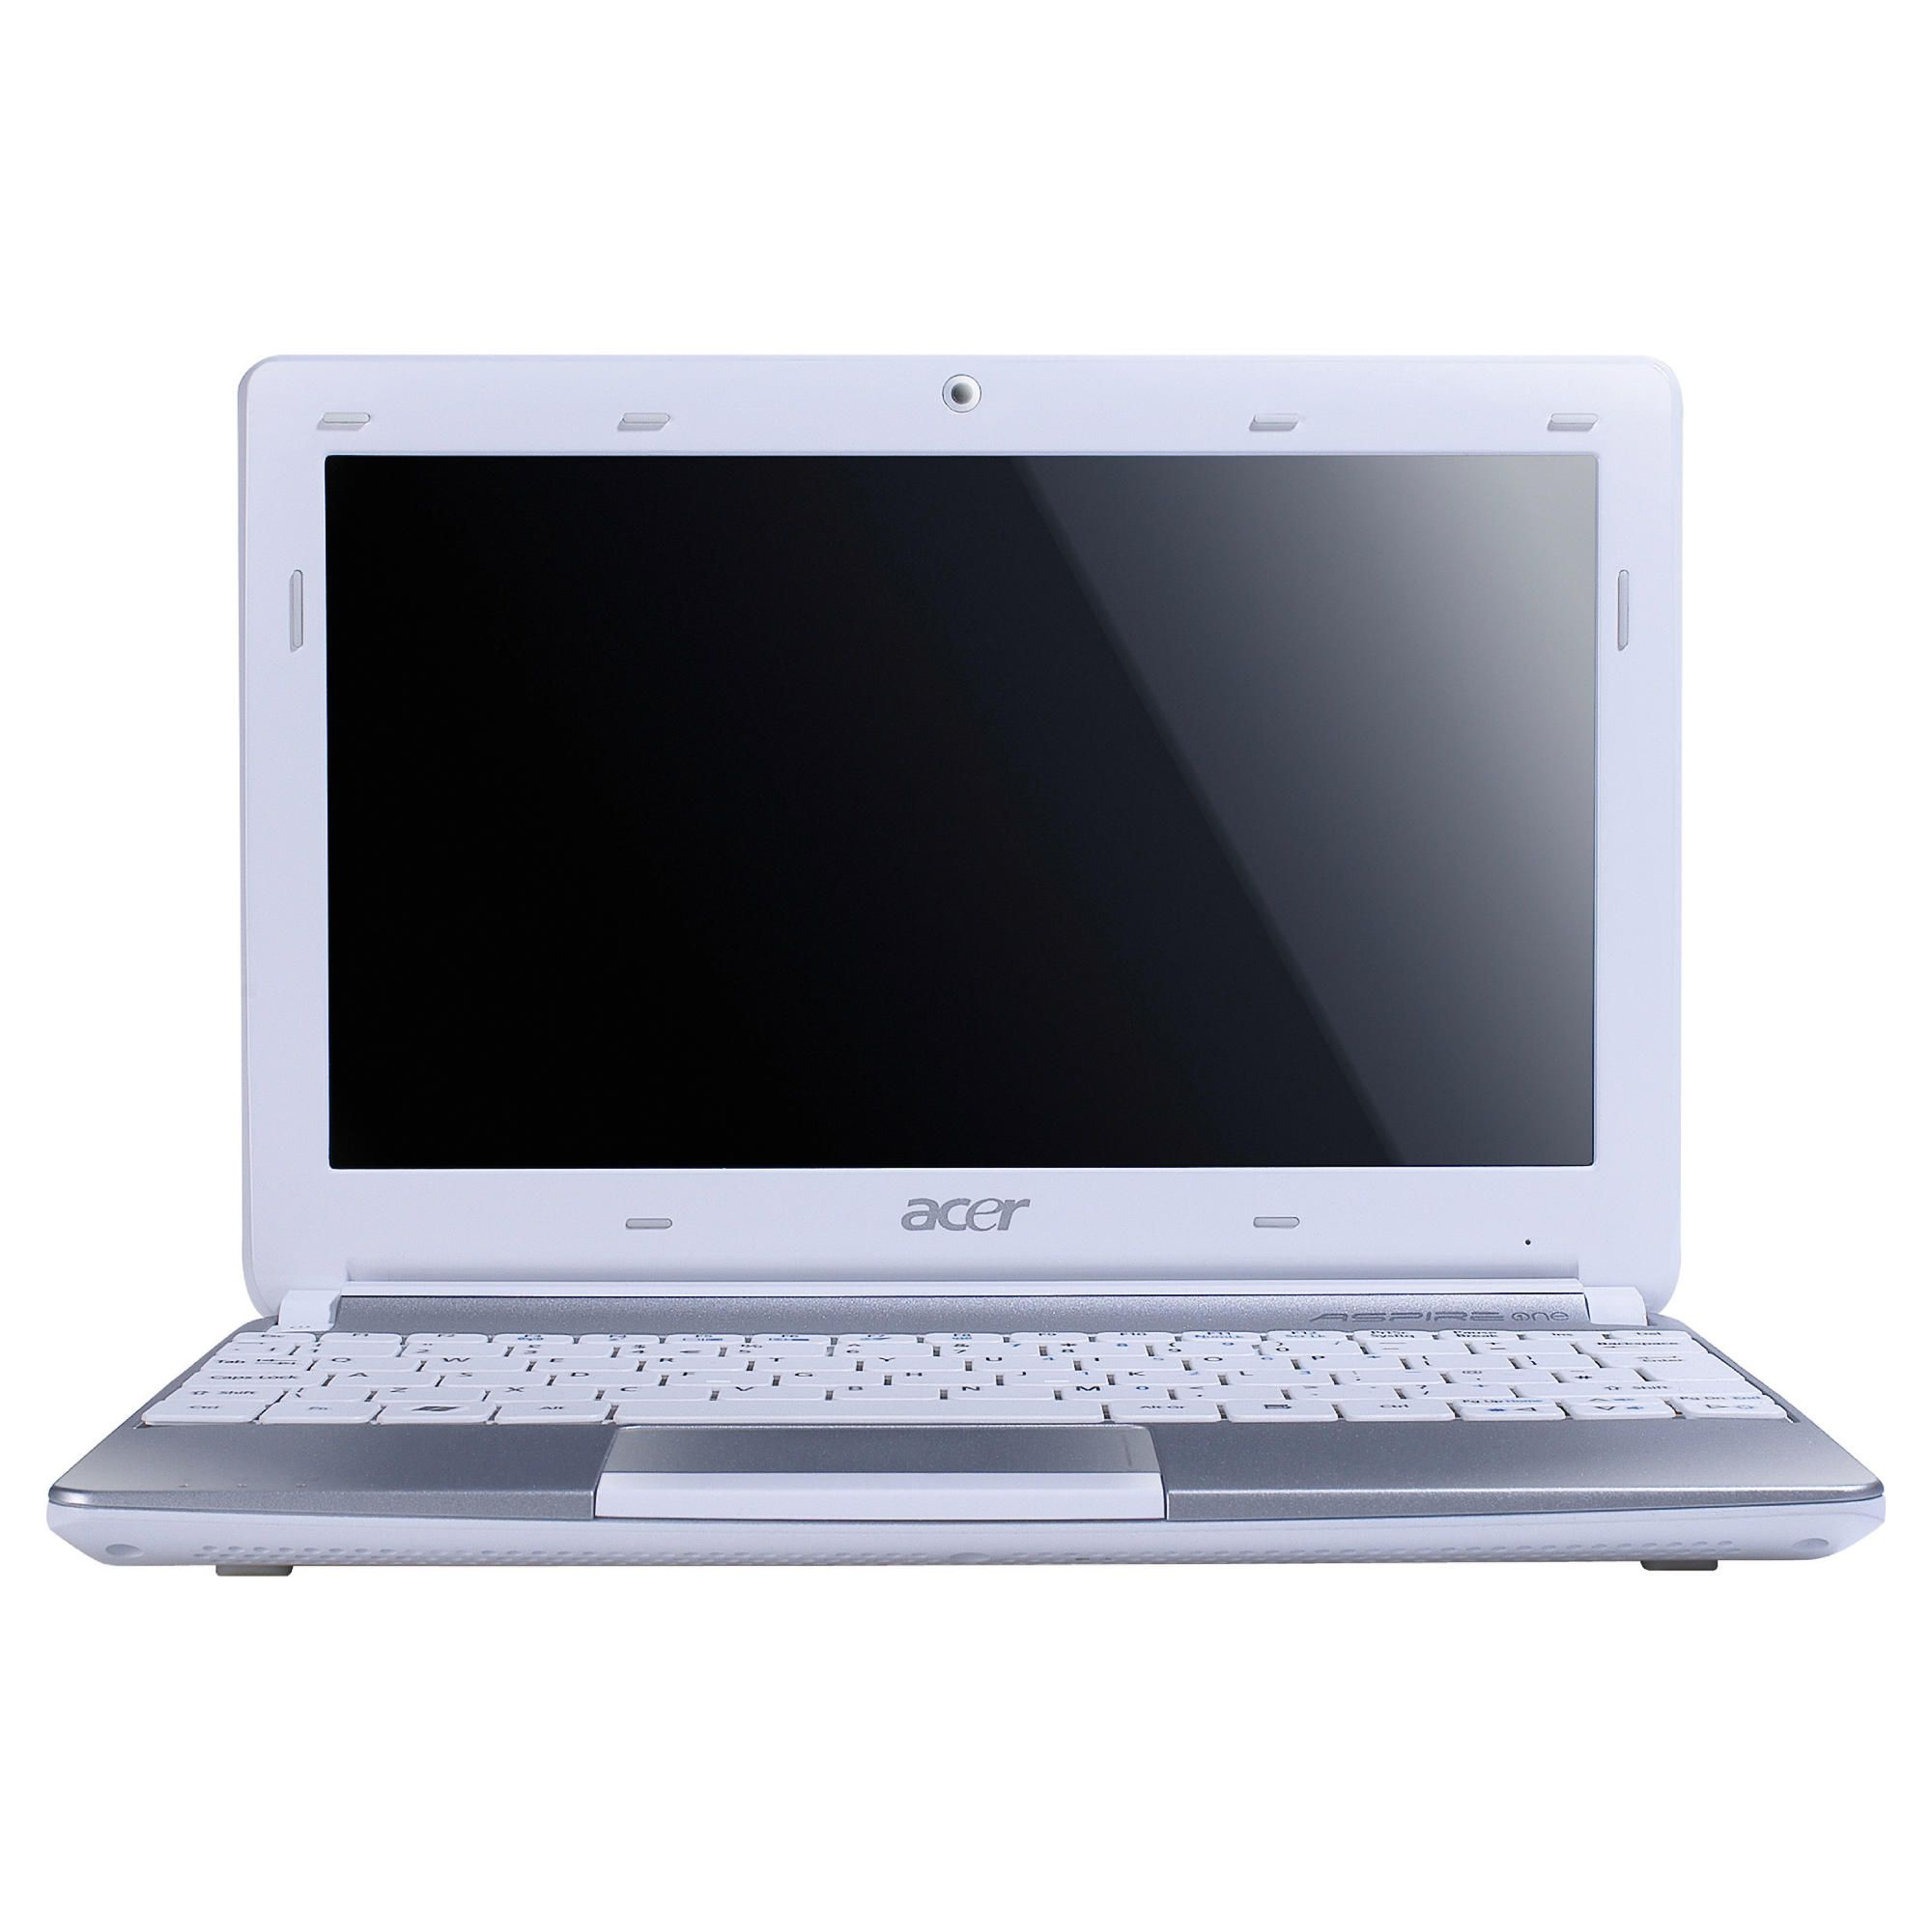 Acer Aspire One D257 Netbook (Intel Atom, 1GB, 250GB, 10.1'' Display) White at Tescos Direct